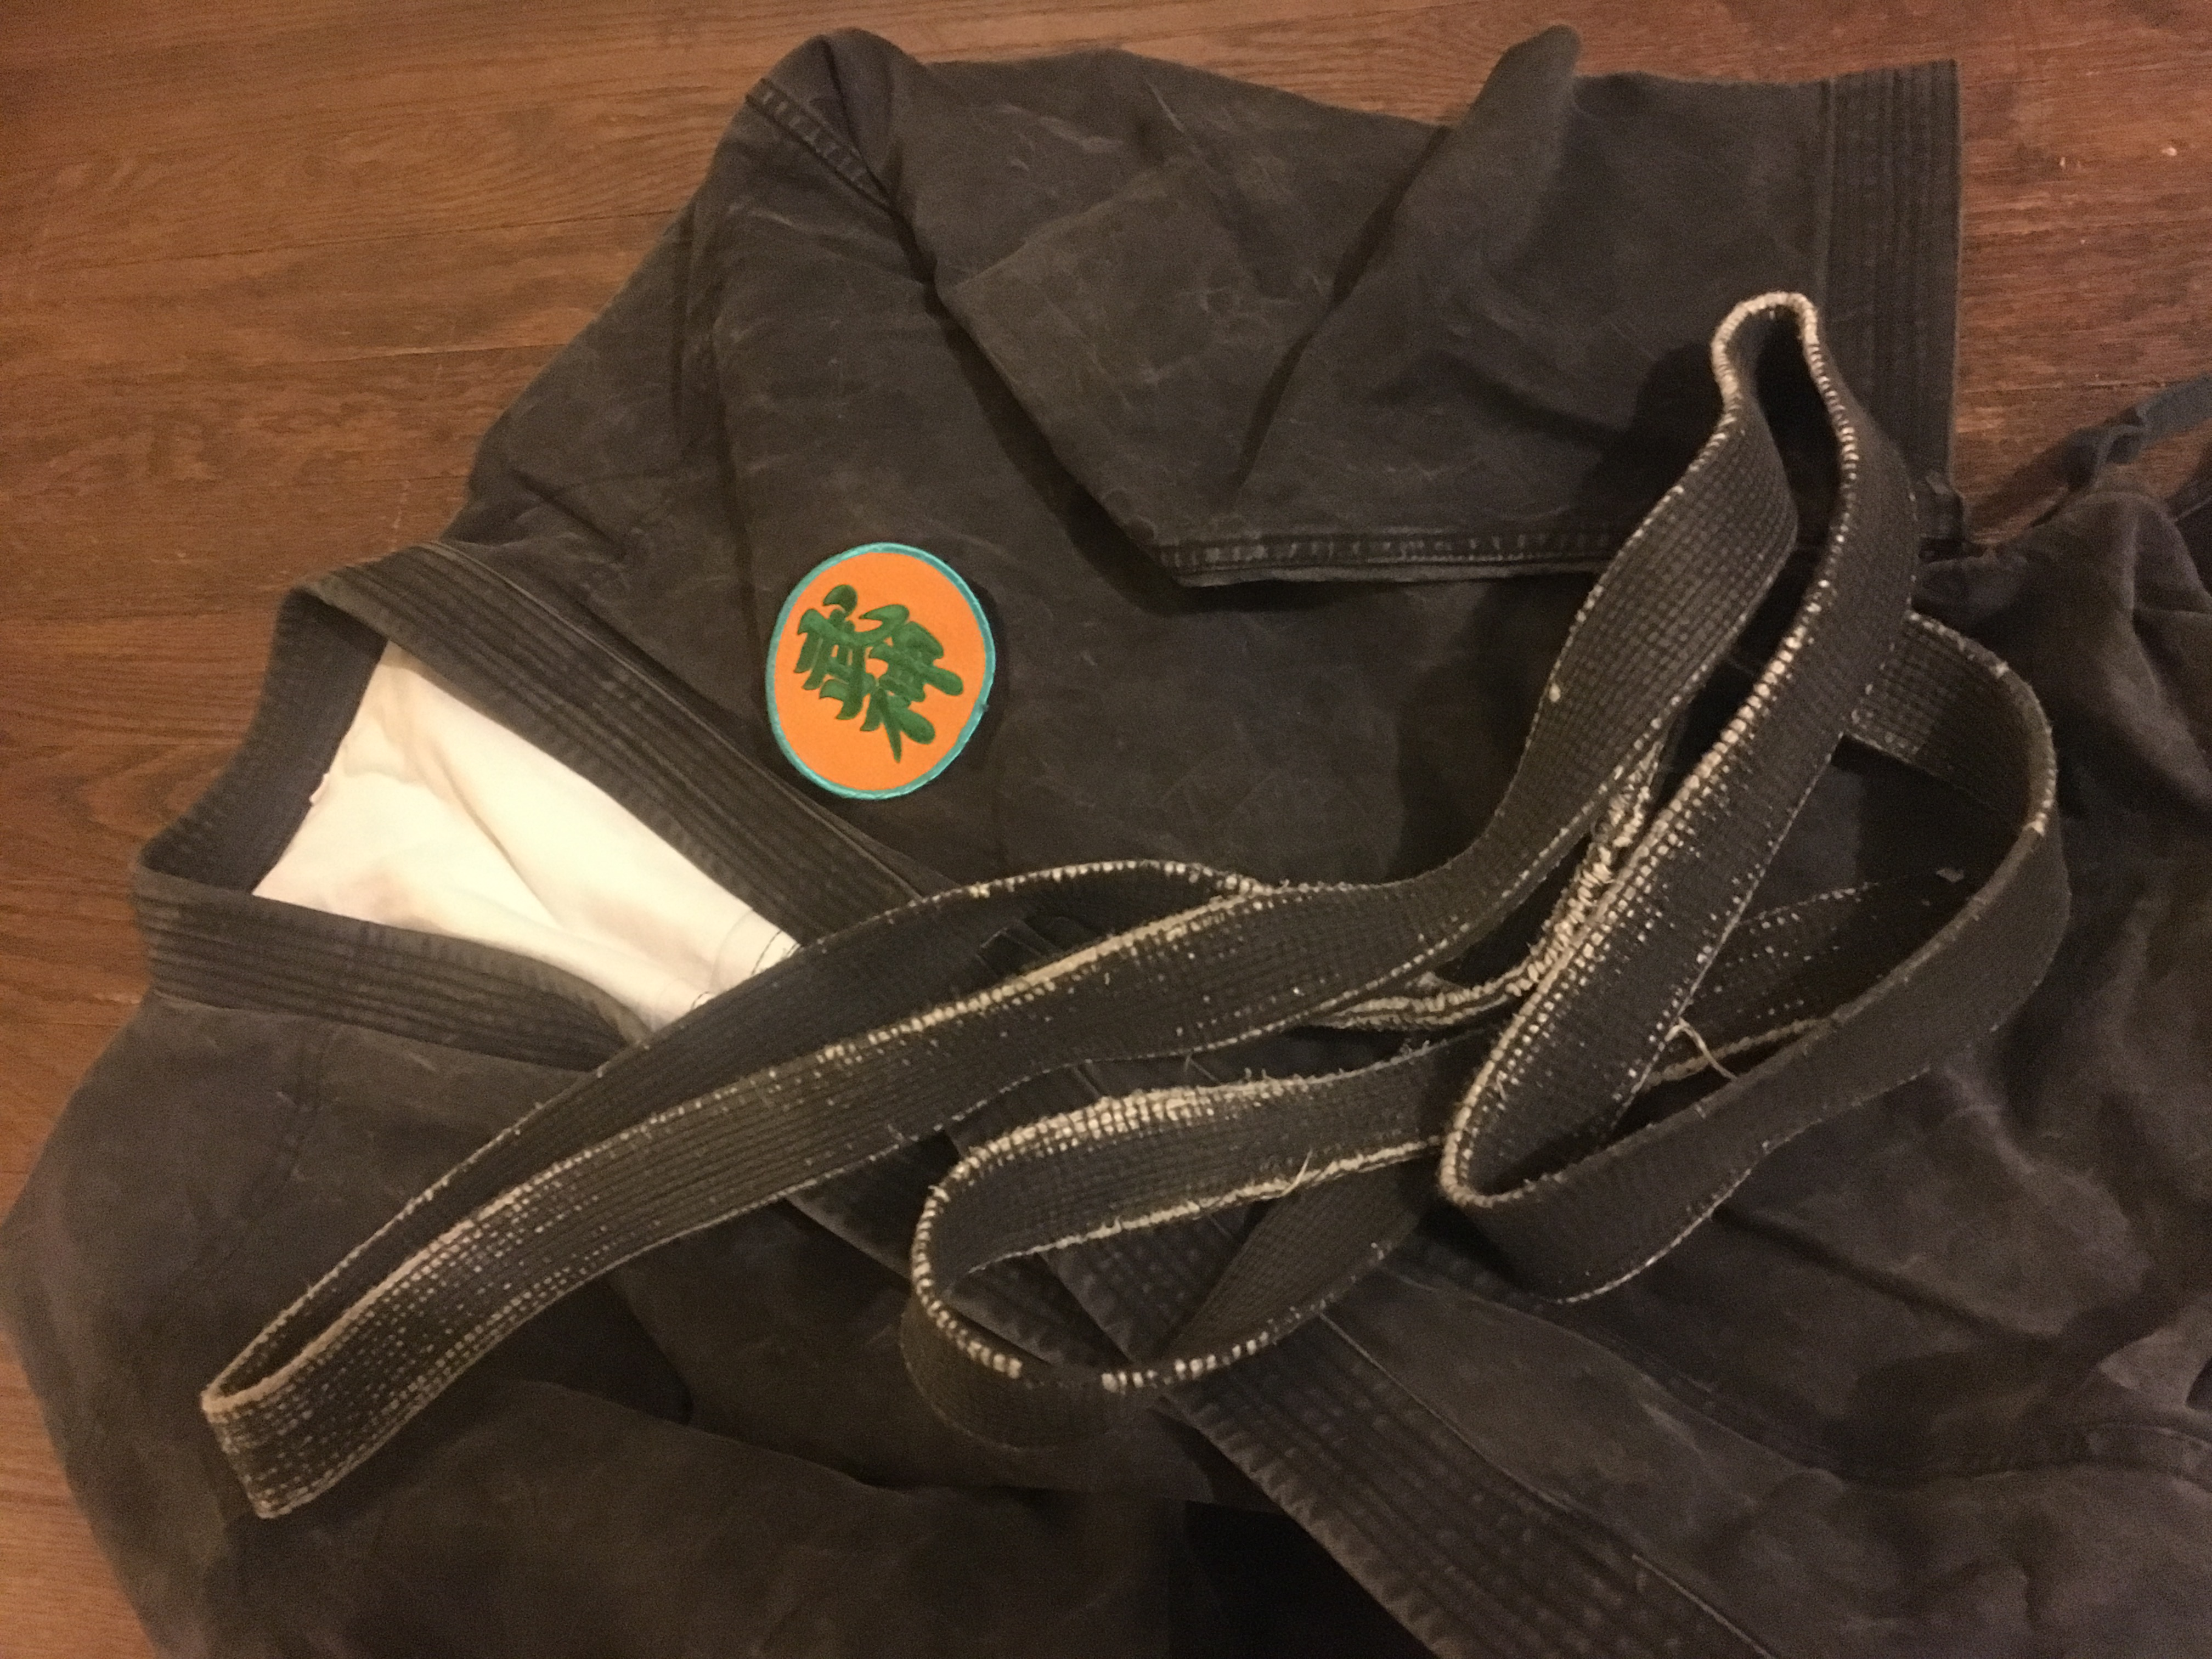 The Myth of Martial Art Instructor Credentials